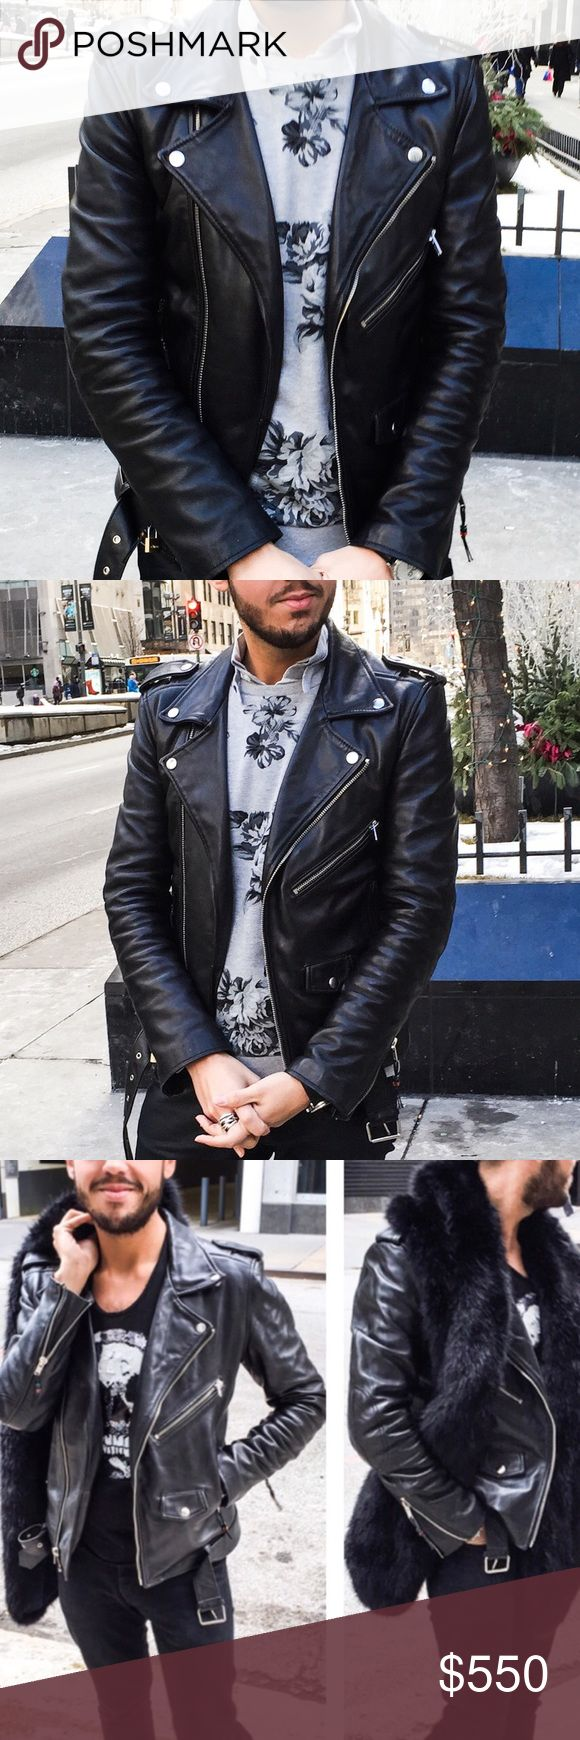 Blk Dnm leather jacket Beautiful blk dnm leather jacket. BLK DNM Jackets & Coats Bomber & Varsity